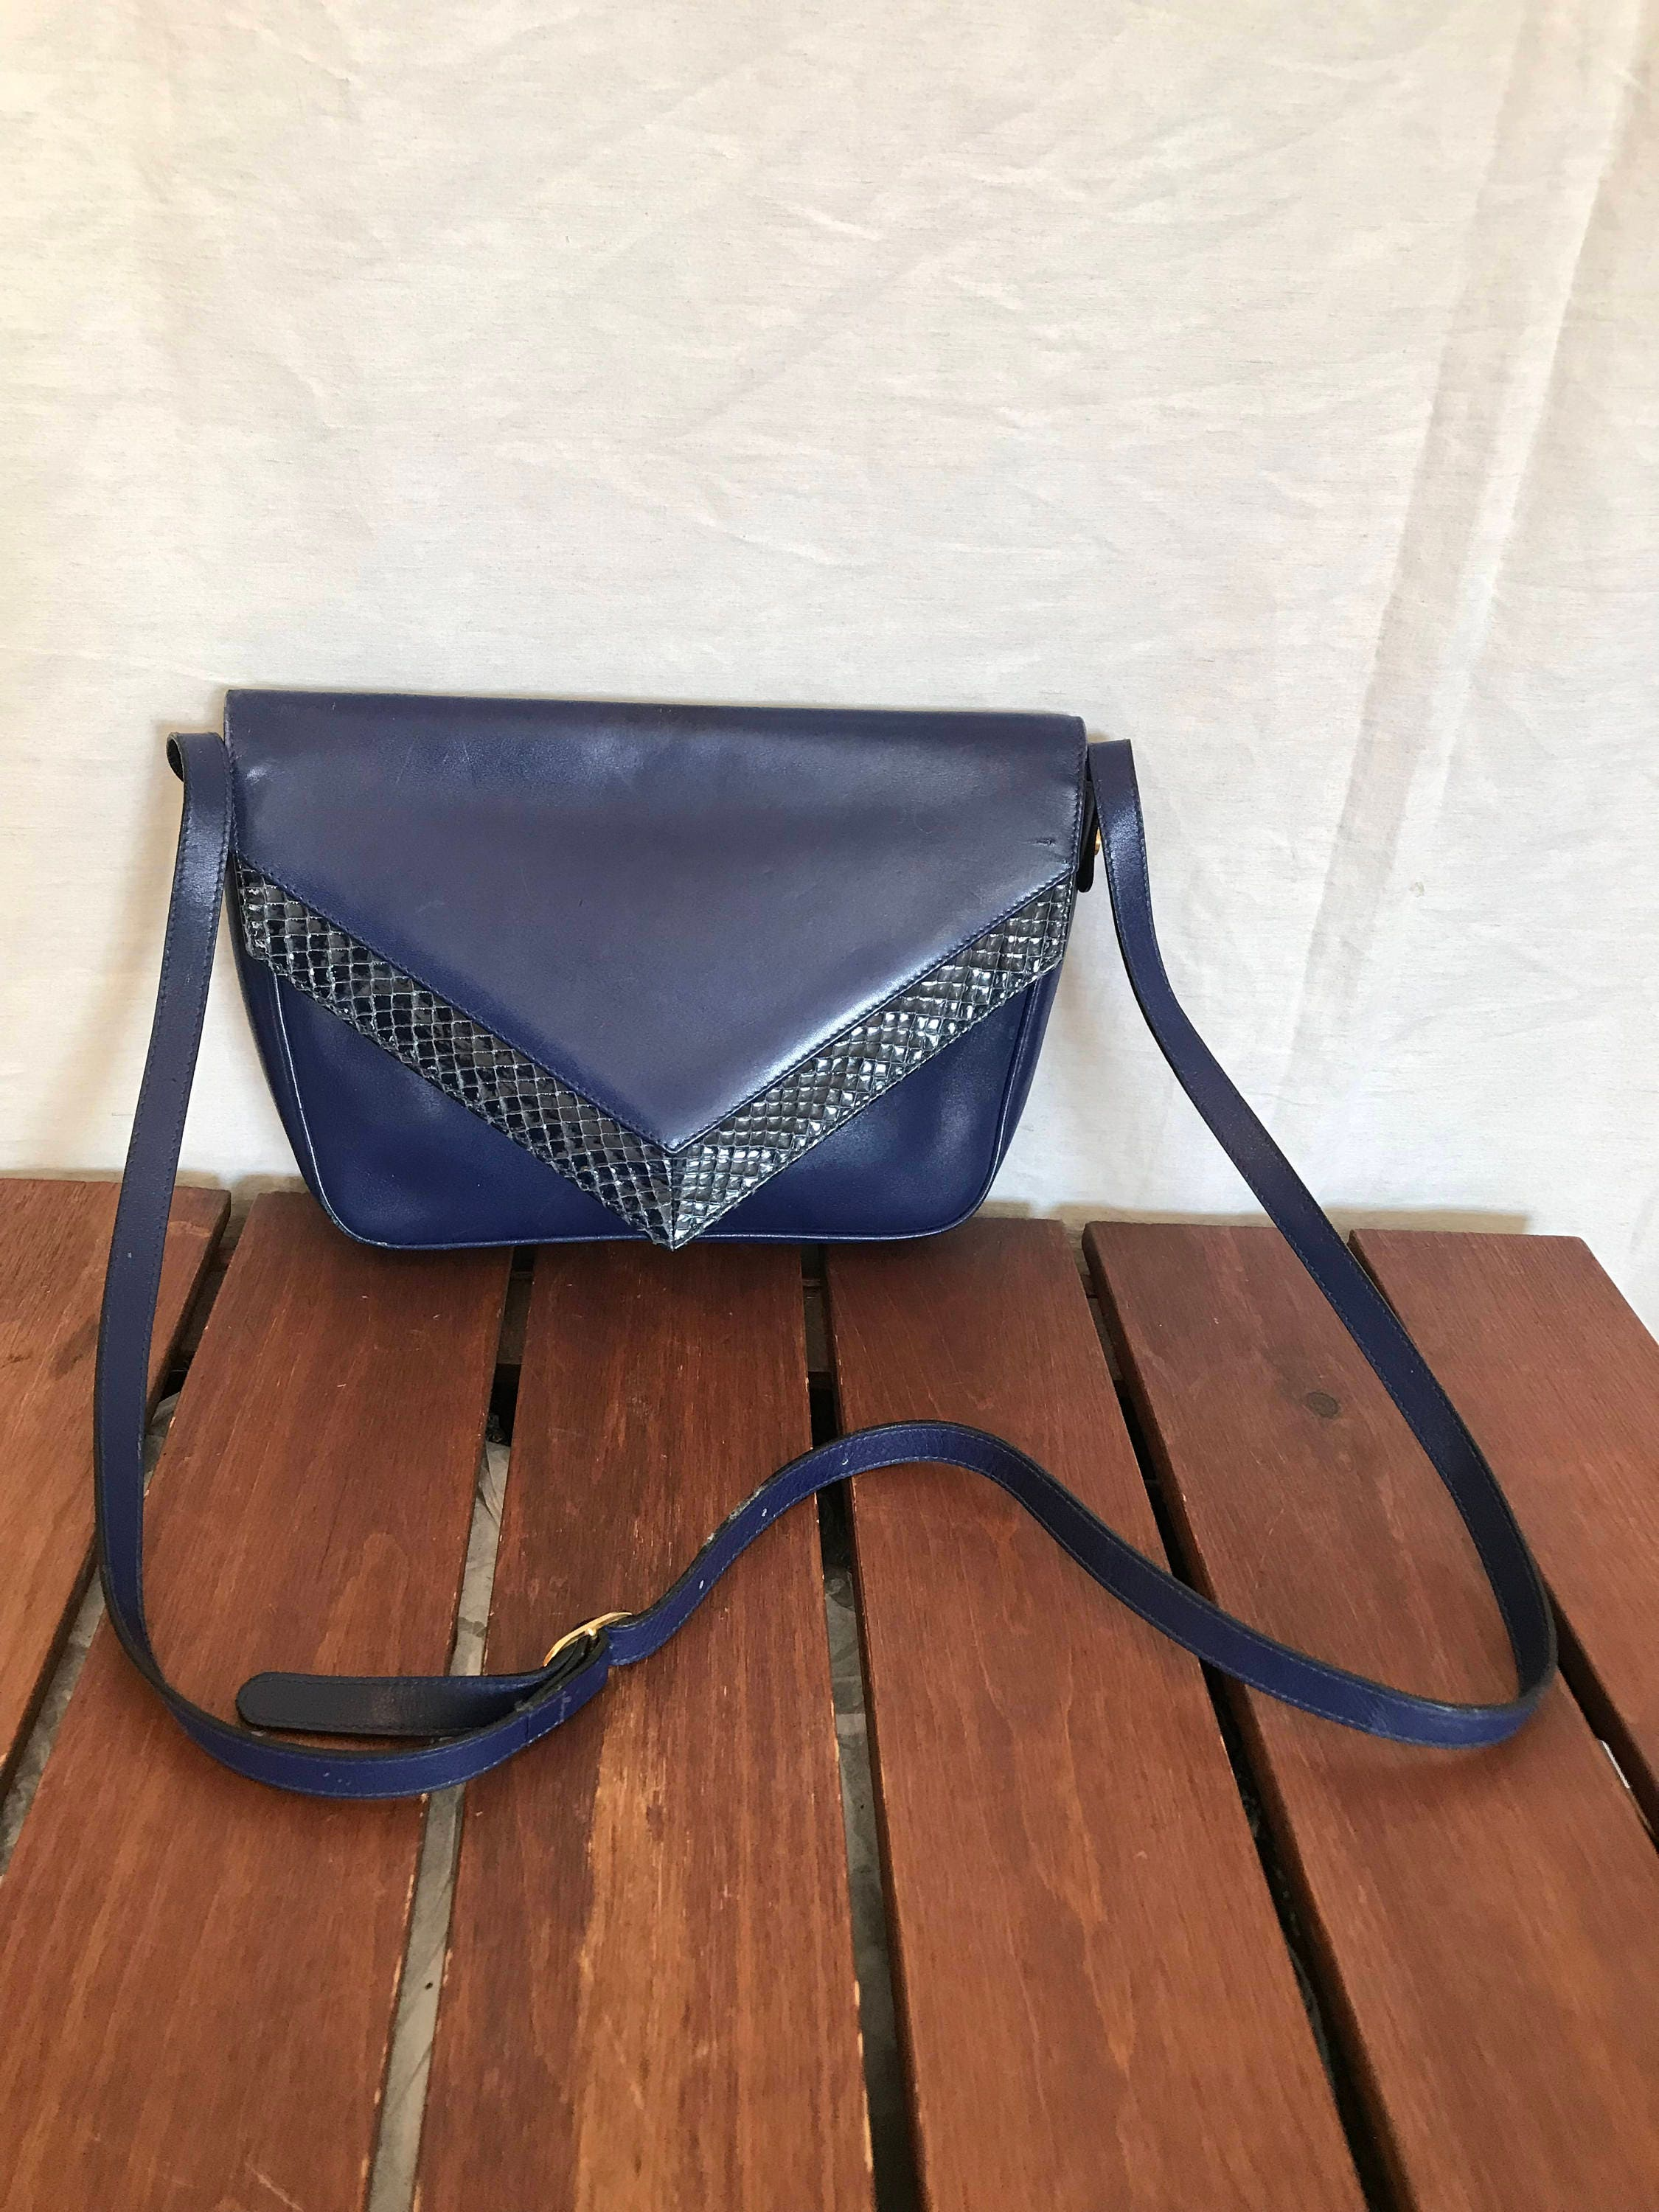 SALVATORE FERRAGAMO Great Authentic Vintage Blue Leather and Snake Trim  Crossbody Bag Shoulder Bag Made in Italy 9c096eaa439b1